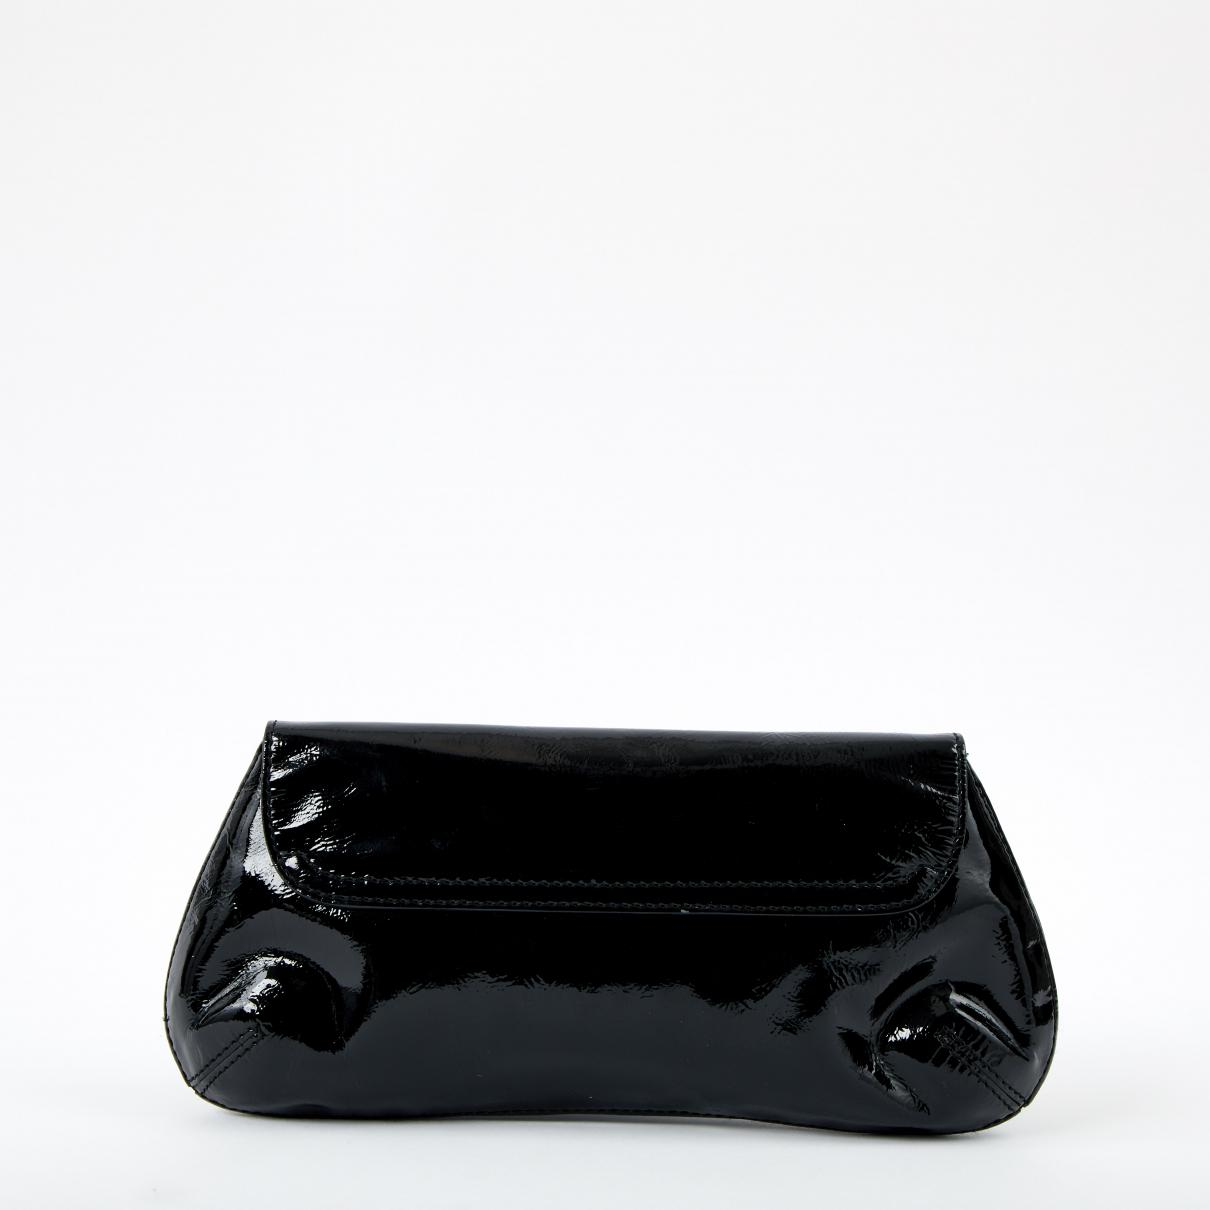 Anya Hindmarch Pre-owned - Black Clutch bag 3dkPMhnJT